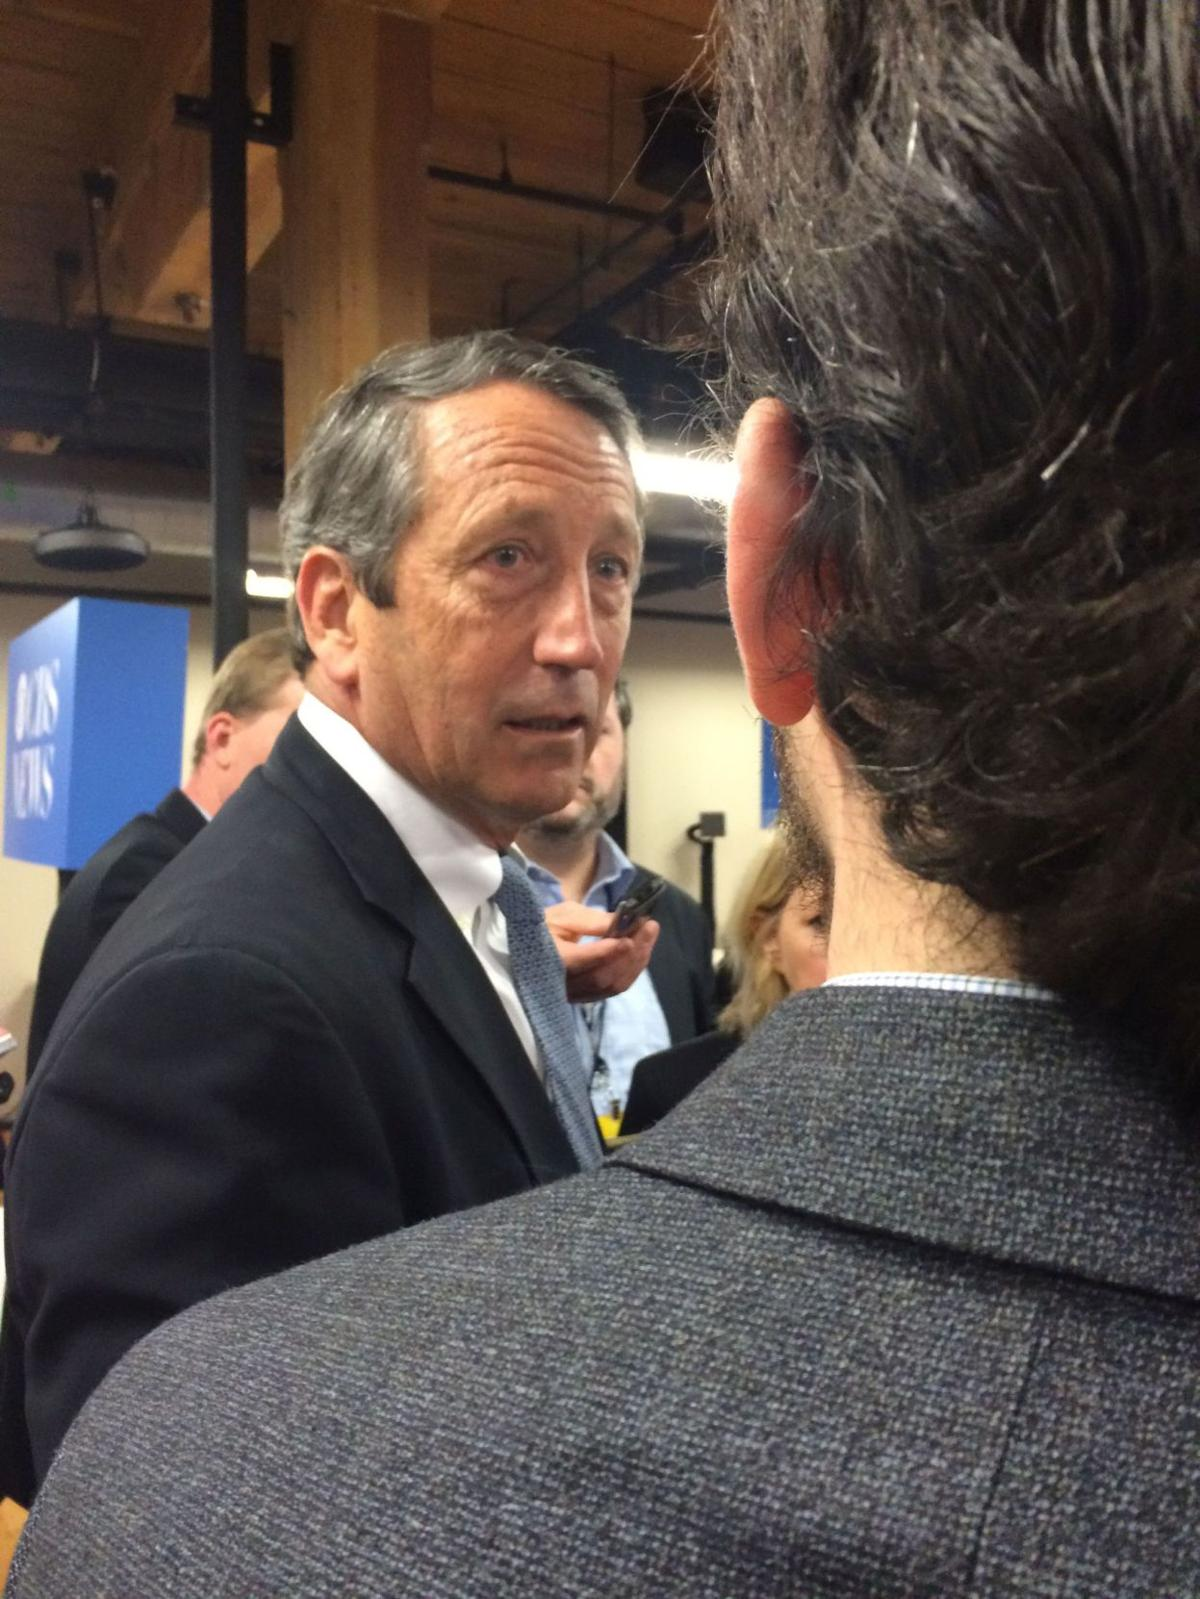 Sanford finds Trump 'frightening' and won't support him if he wins Republican nomination